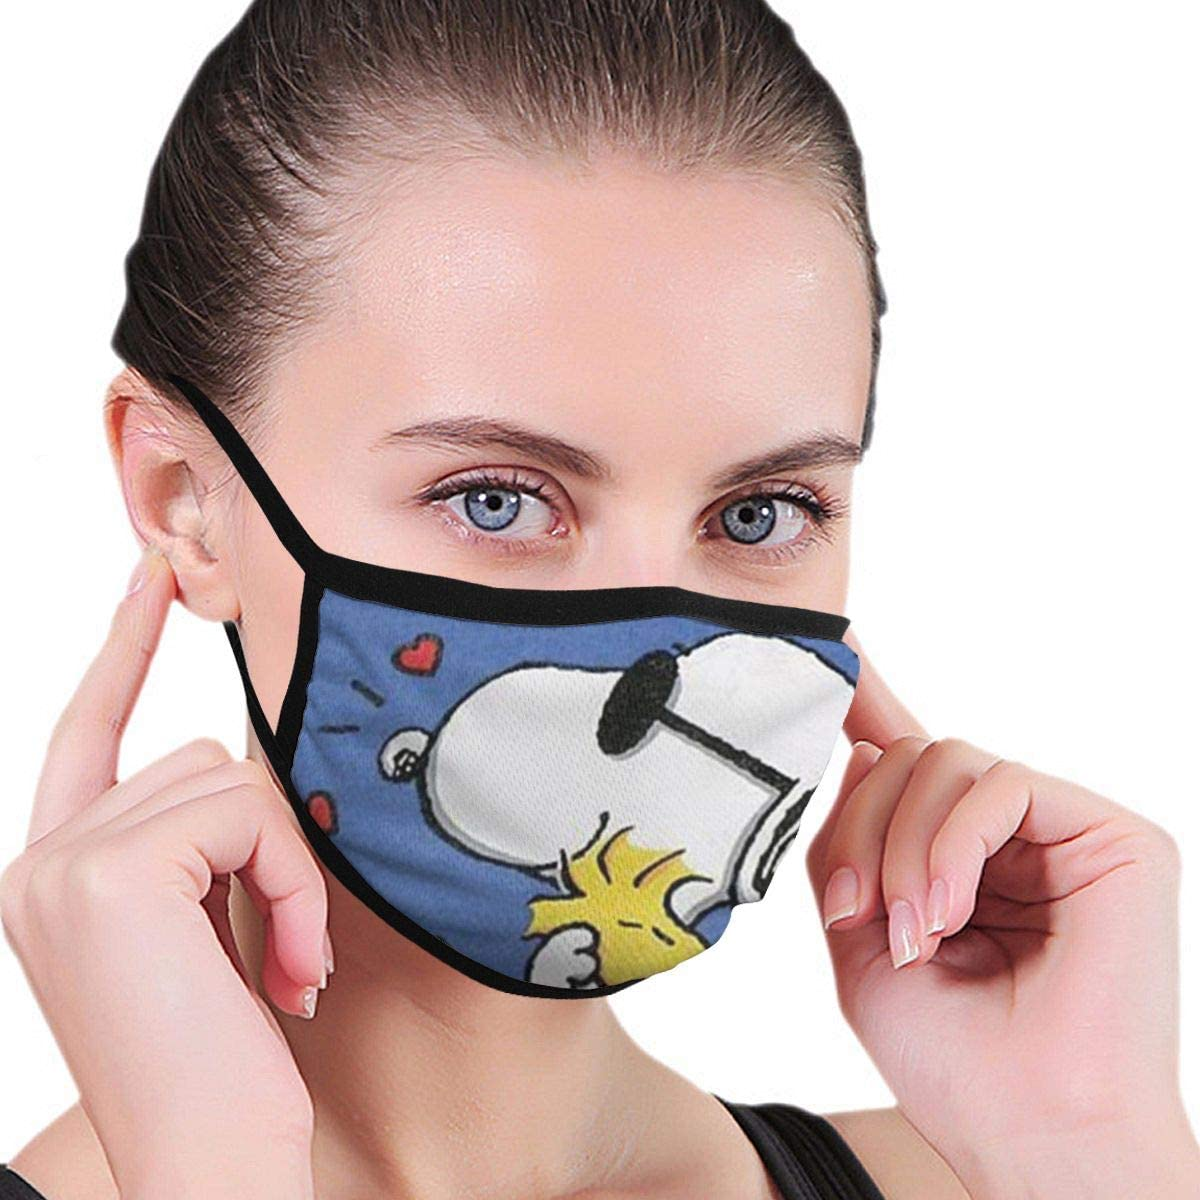 Lxjjj Fashion Snoopy Love Hug Dustproof Washable Reusable Mouth Cover Germ Protective Safety Mouth Guard Anti Dust Half Face Guard Unisex